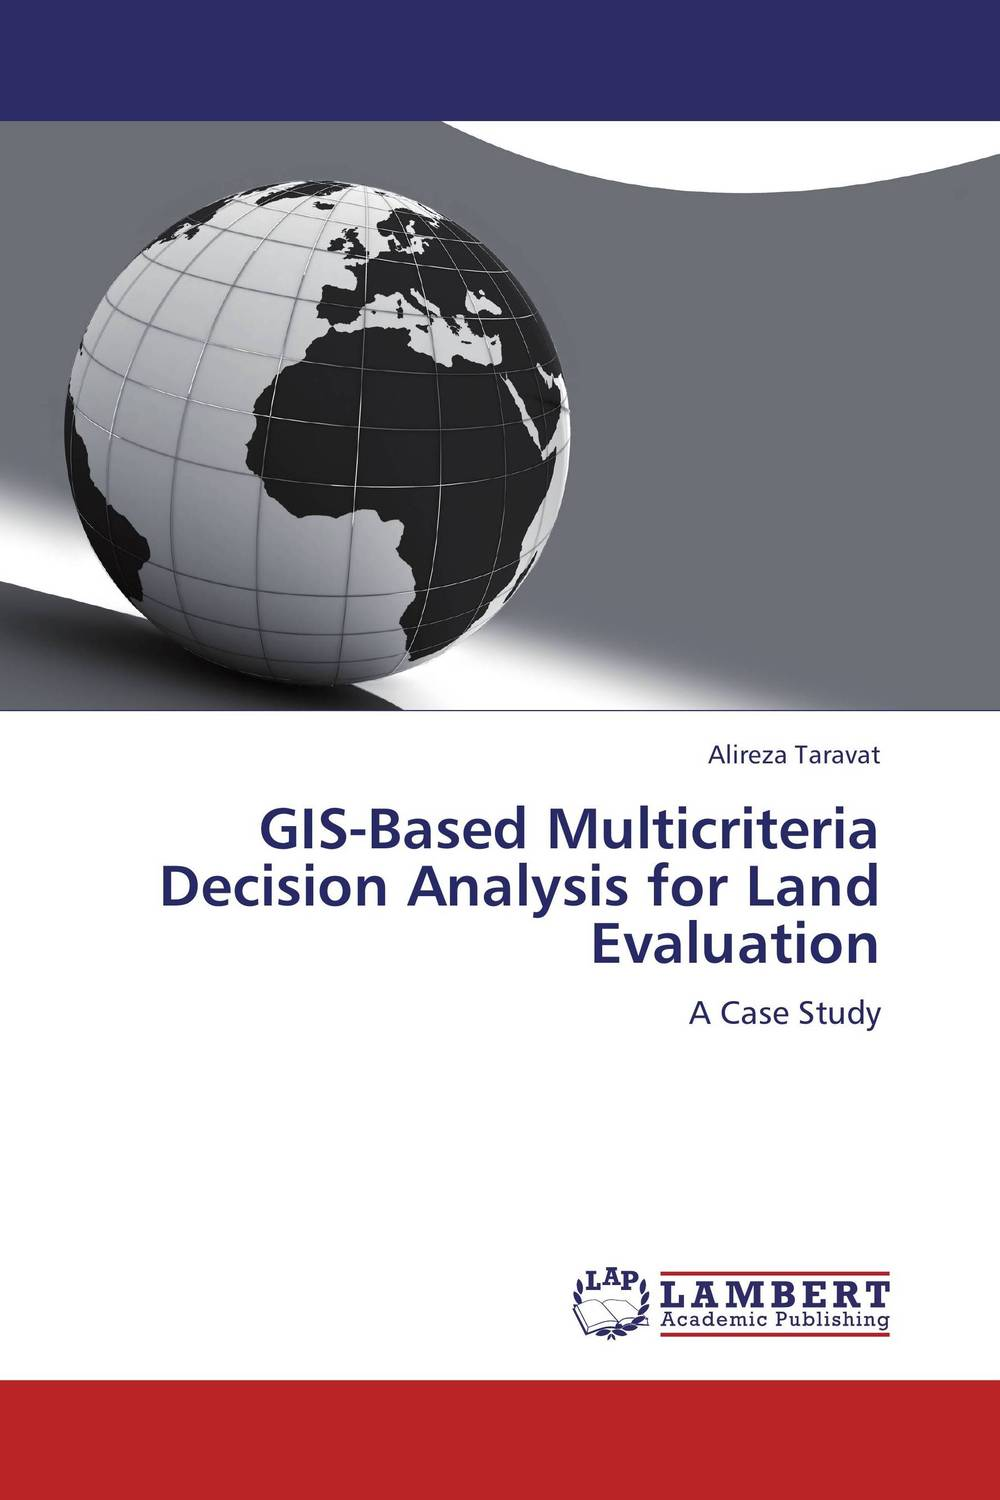 GIS-Based Multicriteria Decision Analysis for Land Evaluation